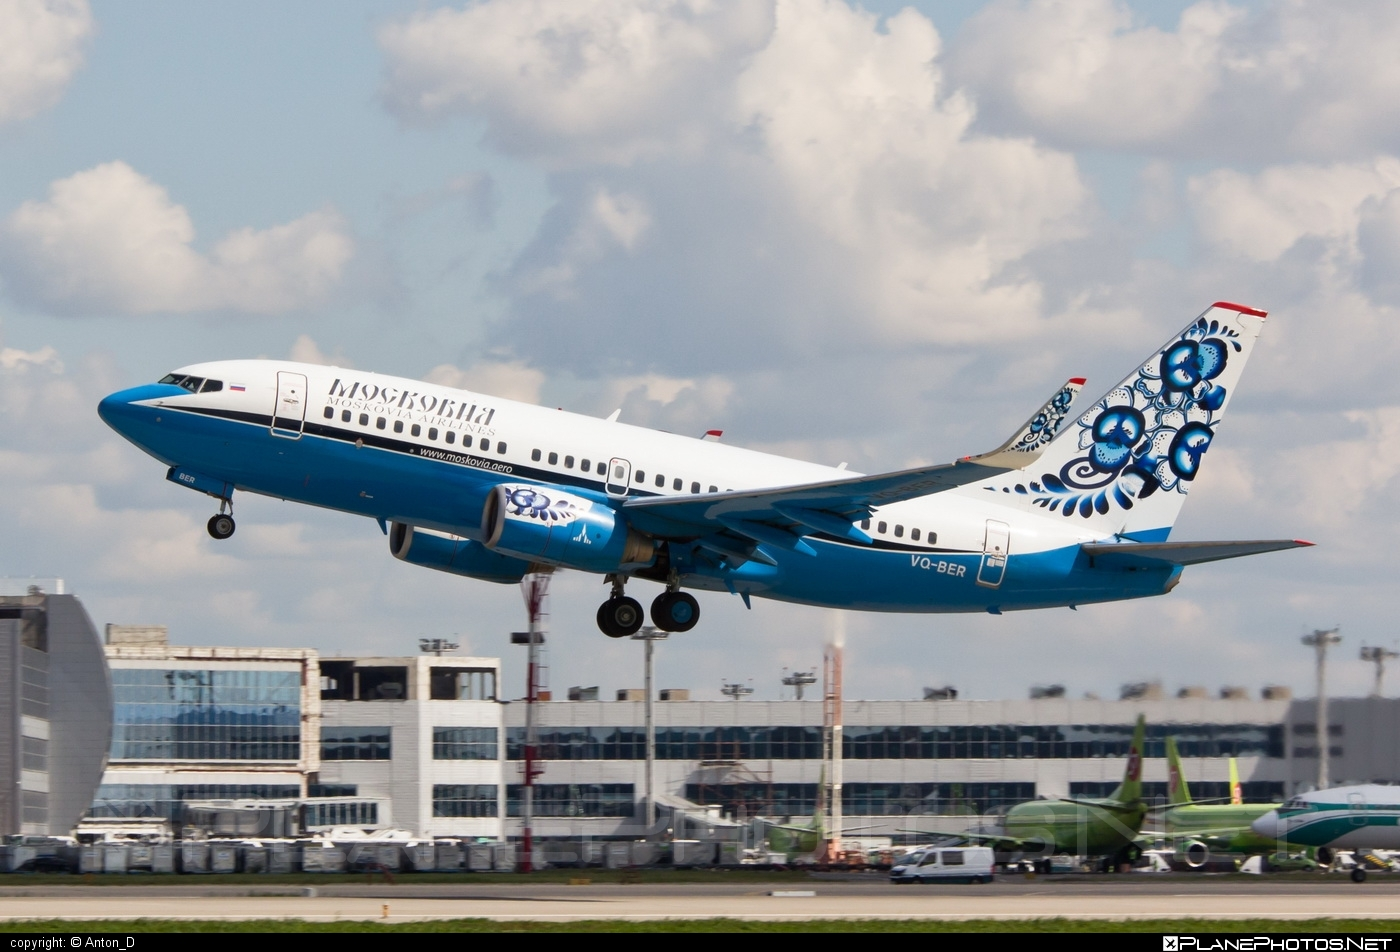 Boeing 737-700 - VQ-BER operated by Moskovia Airlines #b737 #b737nextgen #b737ng #boeing #boeing737